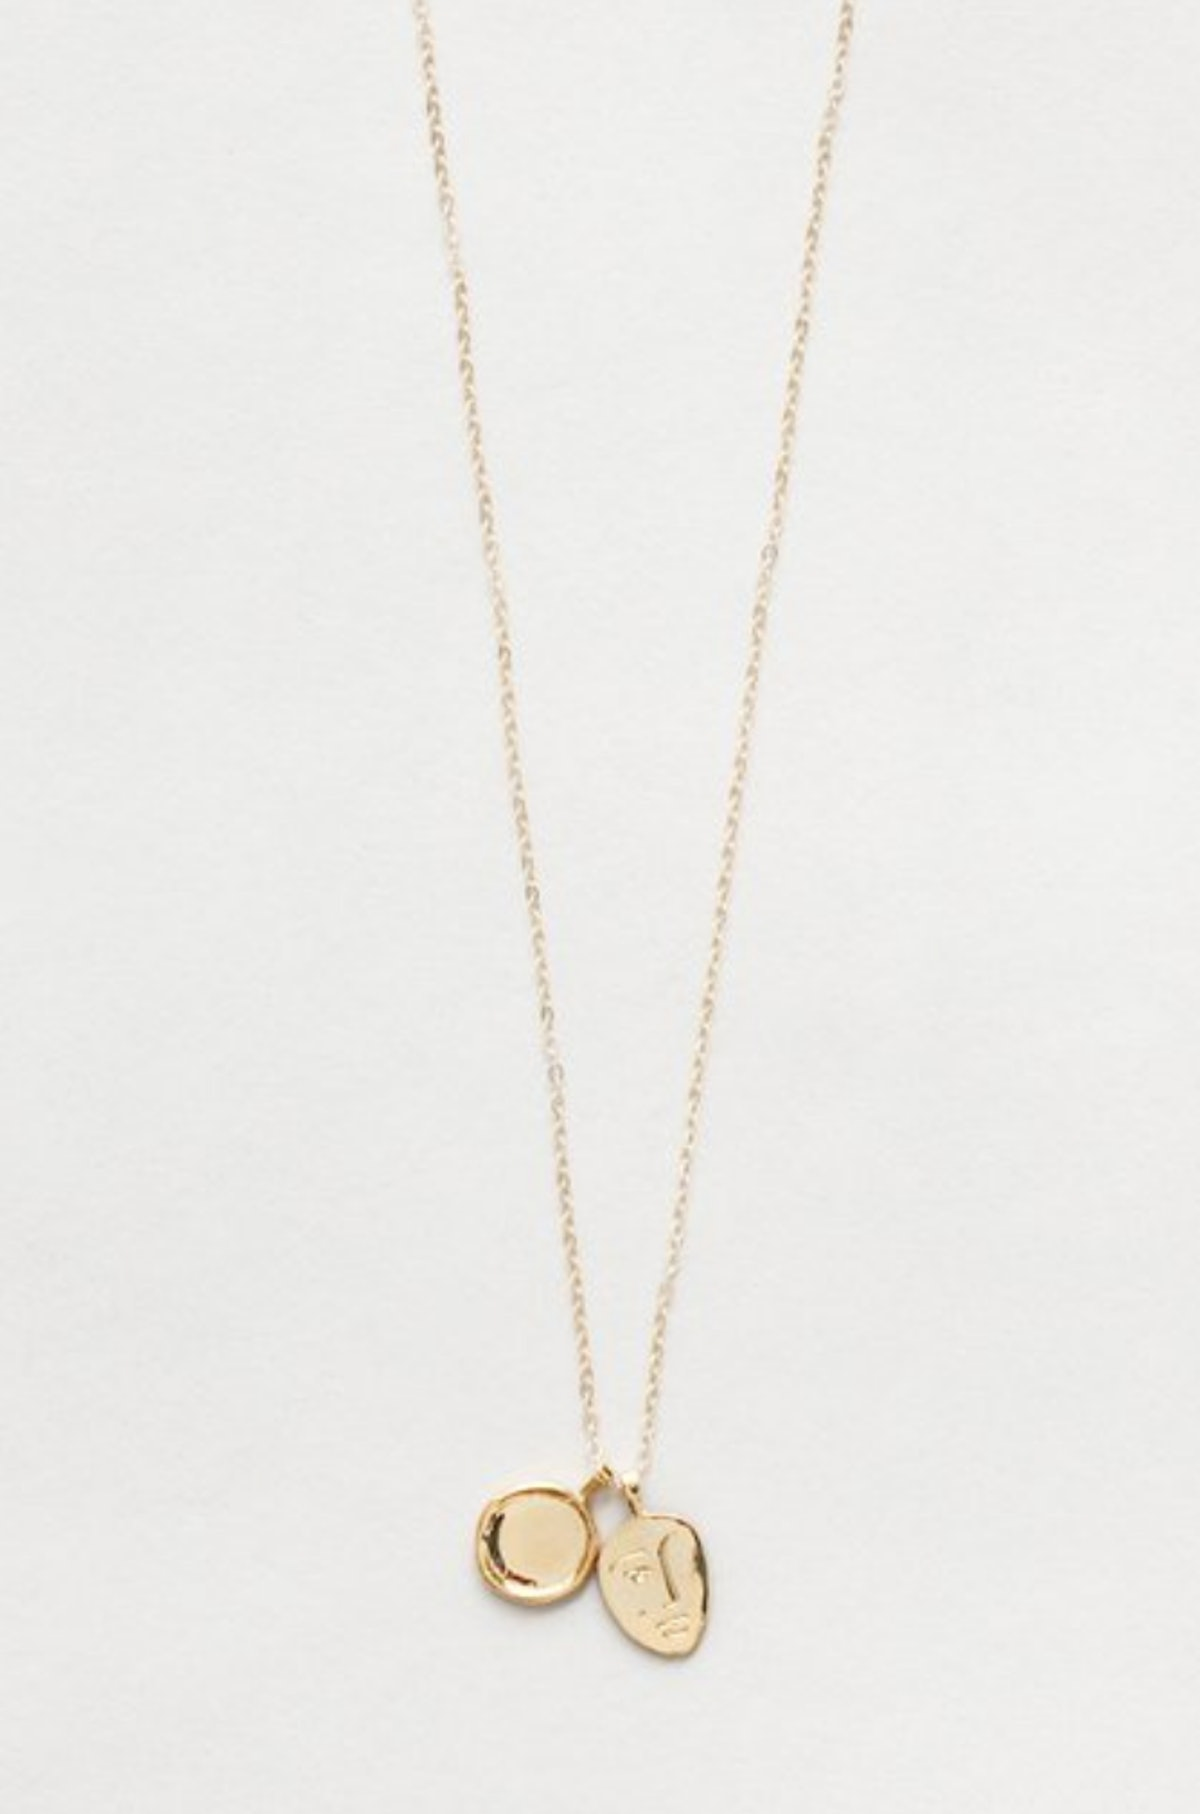 Margerite Necklace in Gold